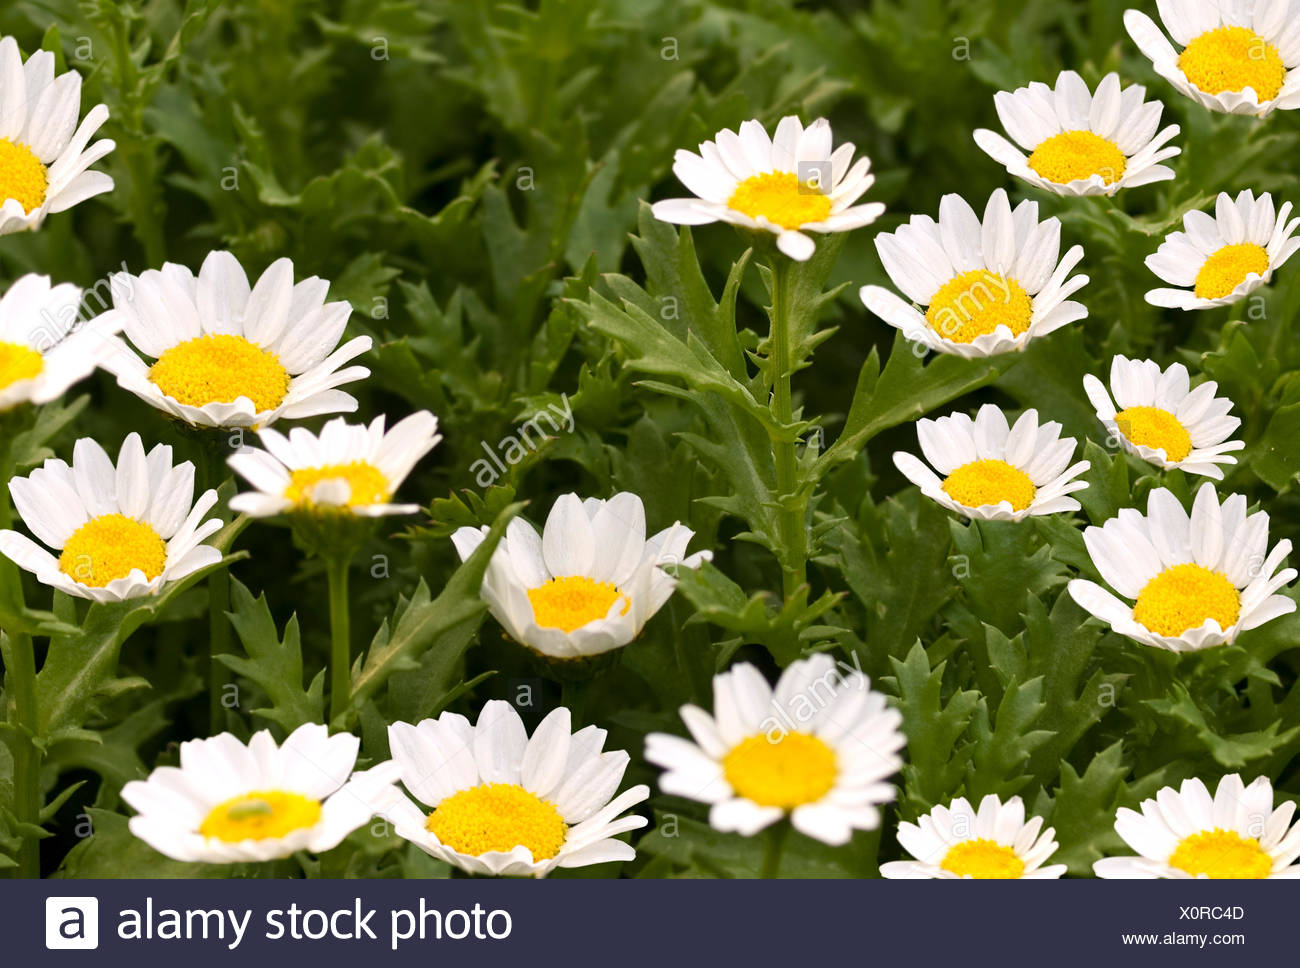 Botany daisies daisy flower green leaves nature white yellow stock flower flowers plant spring daisy meadow white garden flower plant bloom stock image izmirmasajfo